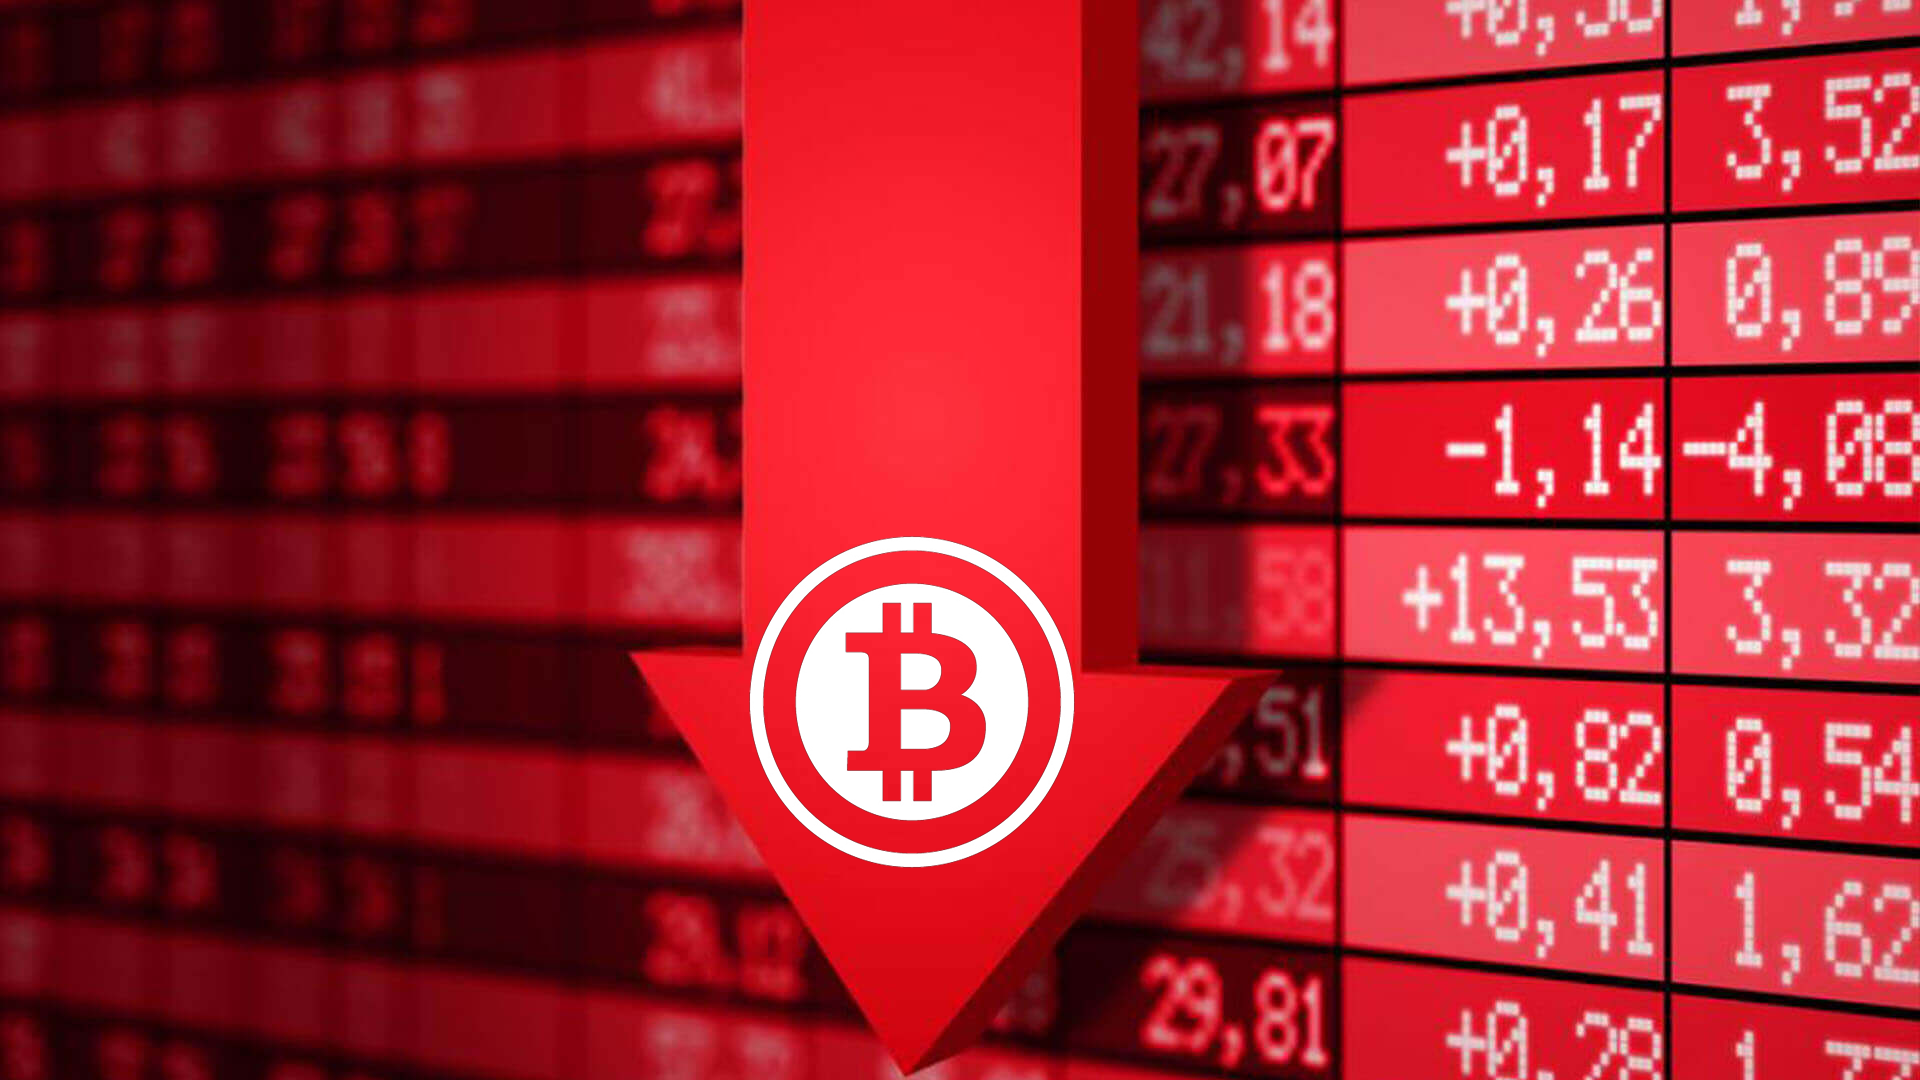 Bitcoin Price collapses below 6000